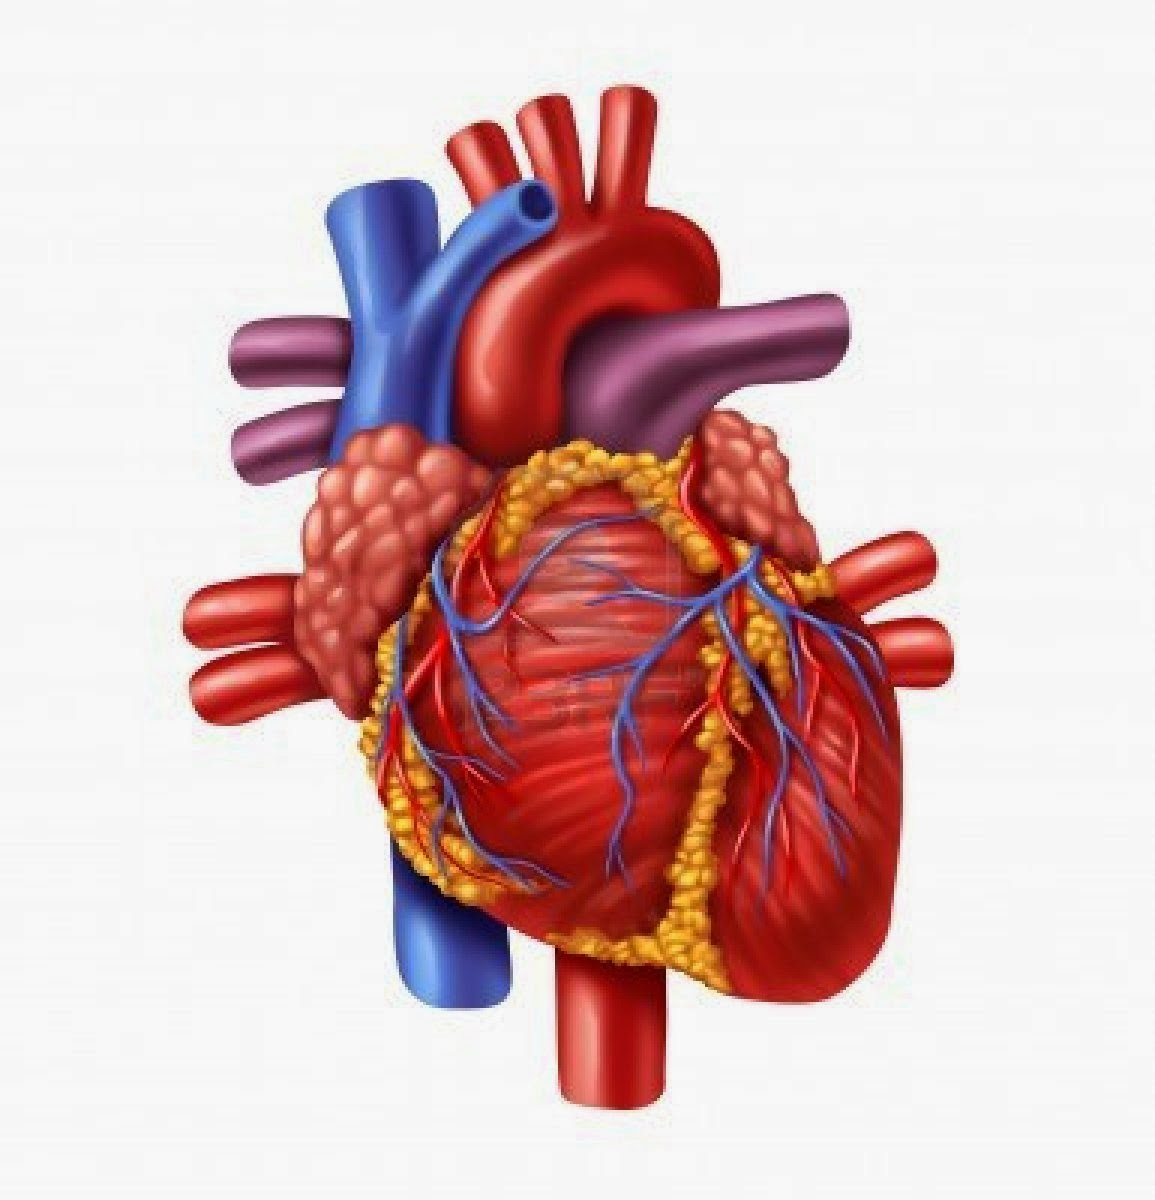 1155x1200 Diagram Of Heart Of Human Being Heart Human Free Download Clip